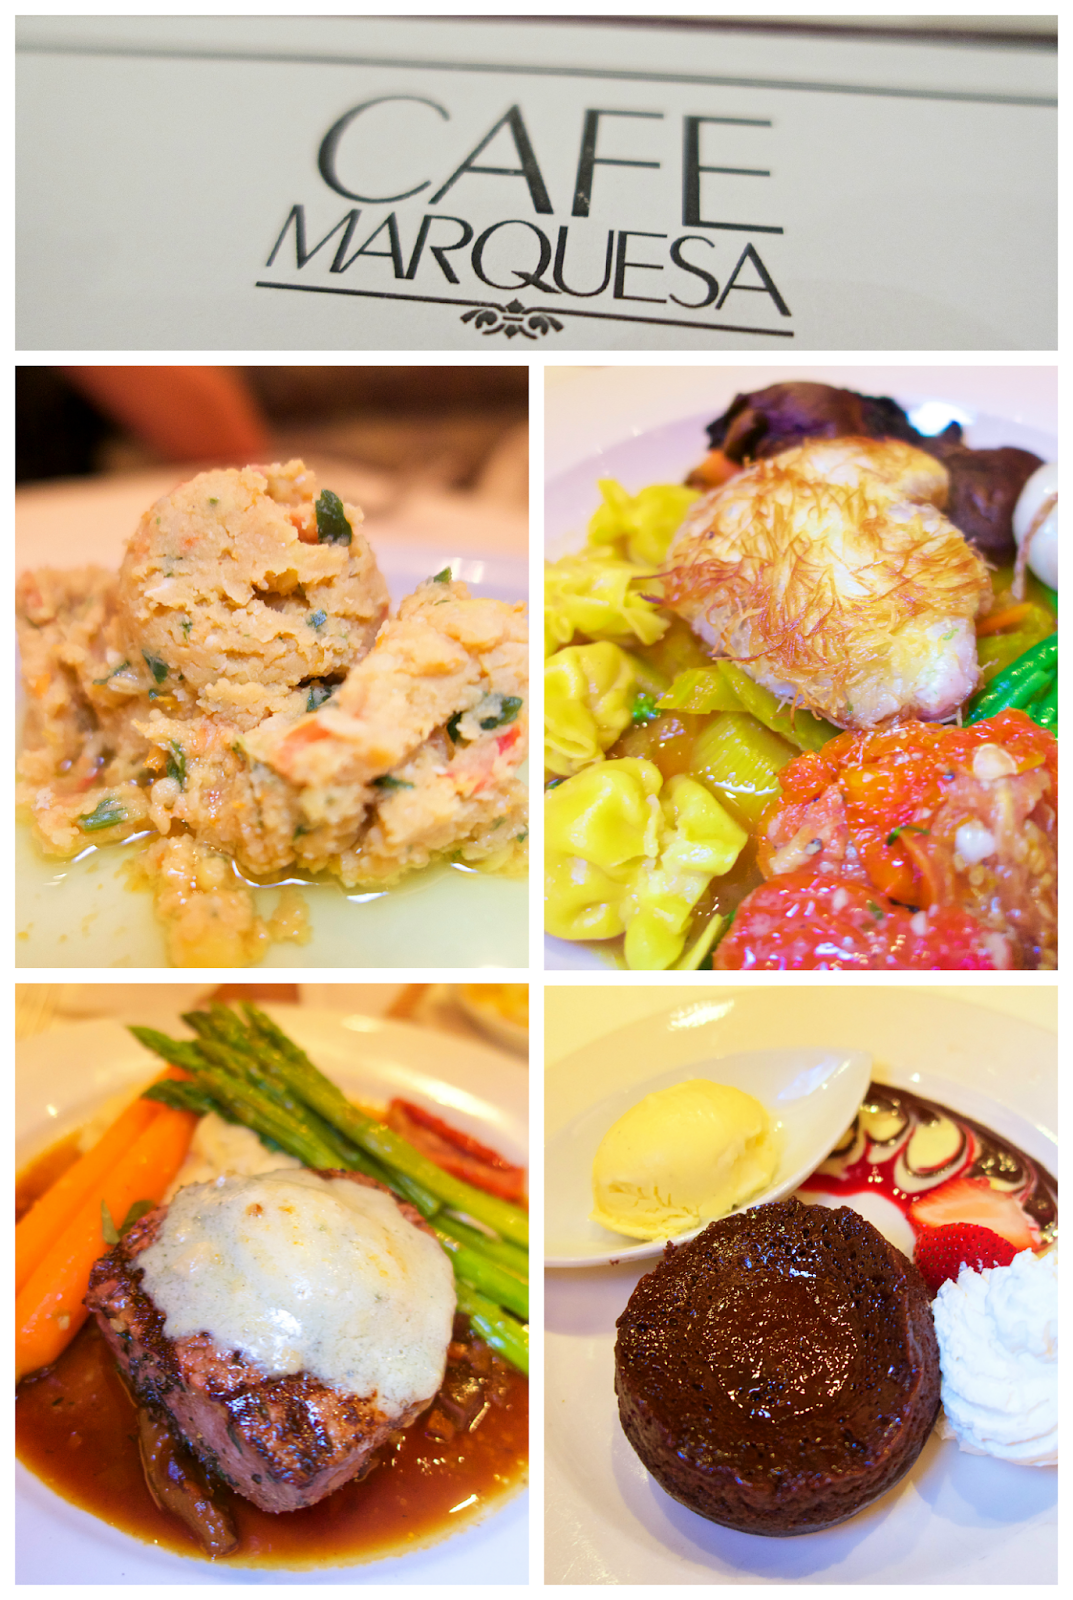 Cafe Marquesa, Key West, FL - Zagat's highest rated restaurant in Key West. Amazing food. A must visit when in Key West!